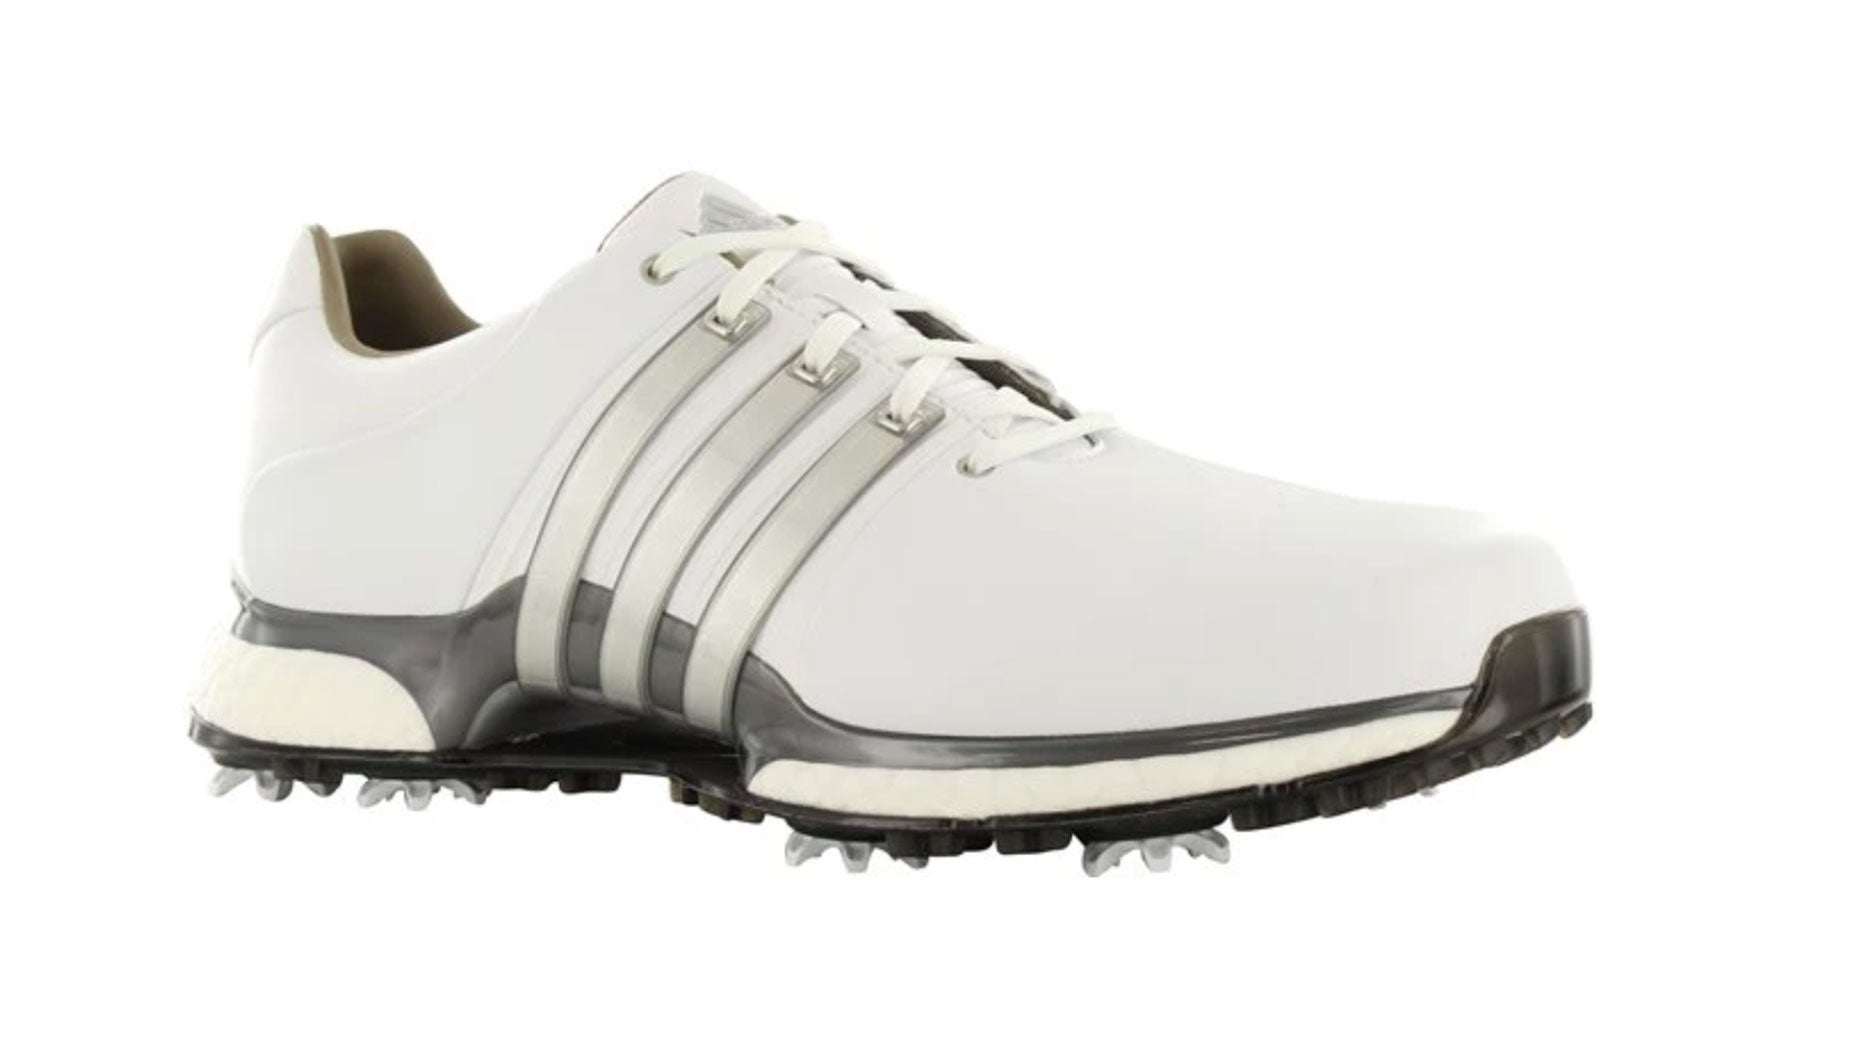 Best spiked golf shoes: These 5 stylish